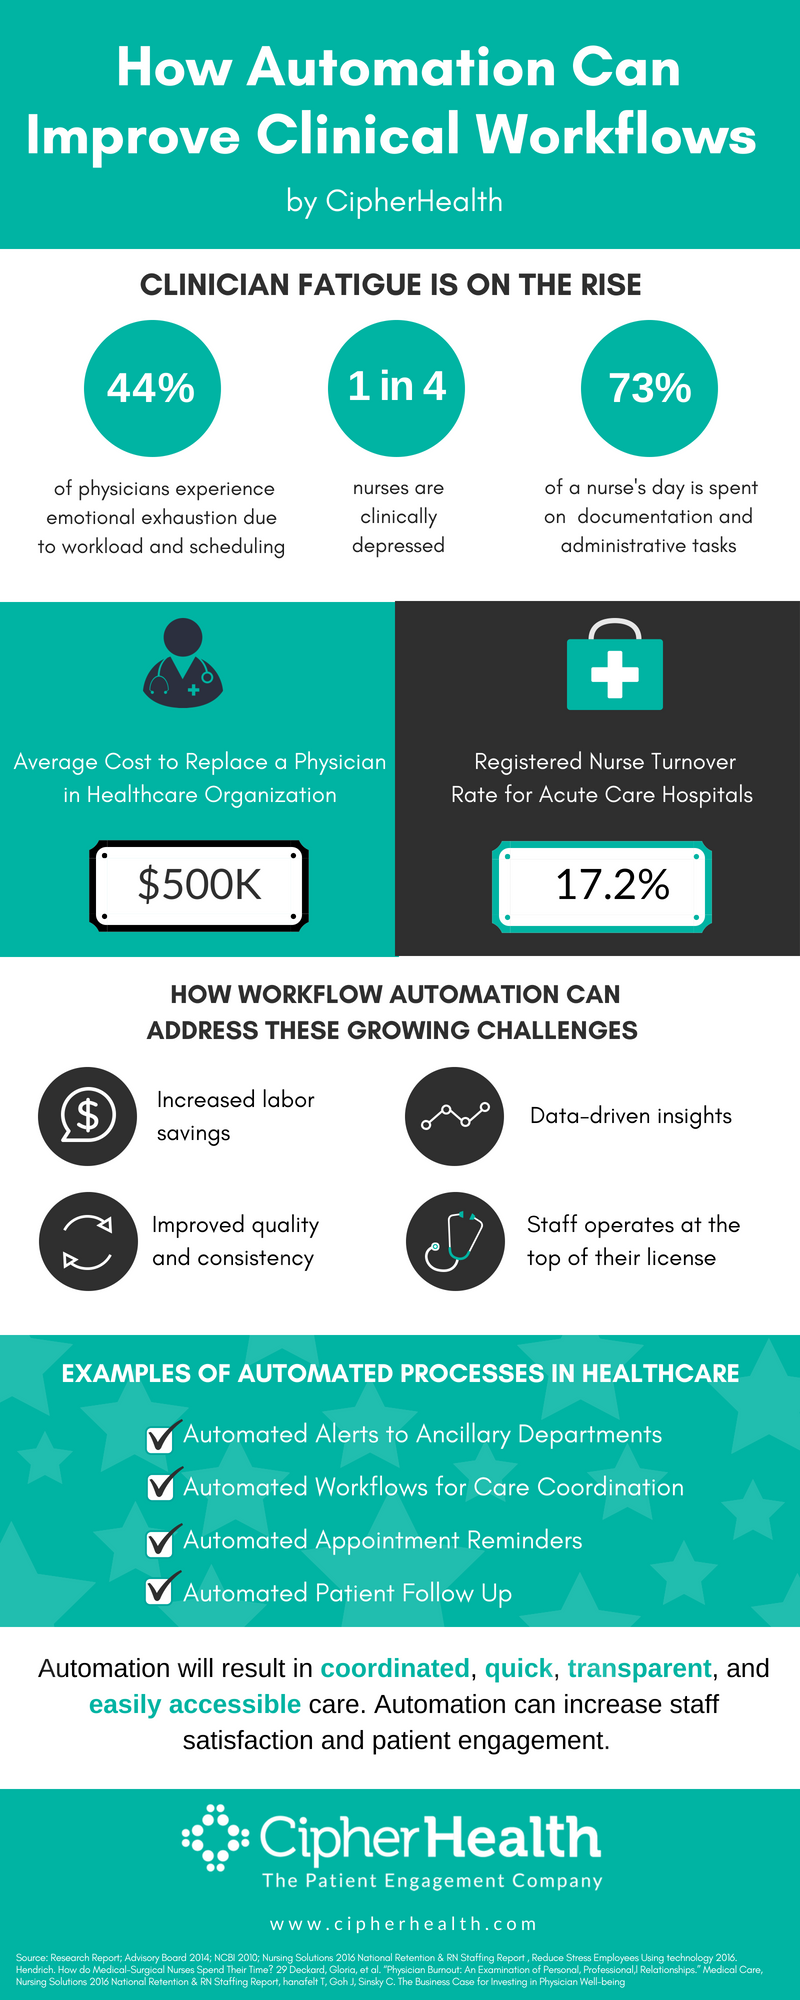 How Automation Can Improve Clincial Workflows Infographic